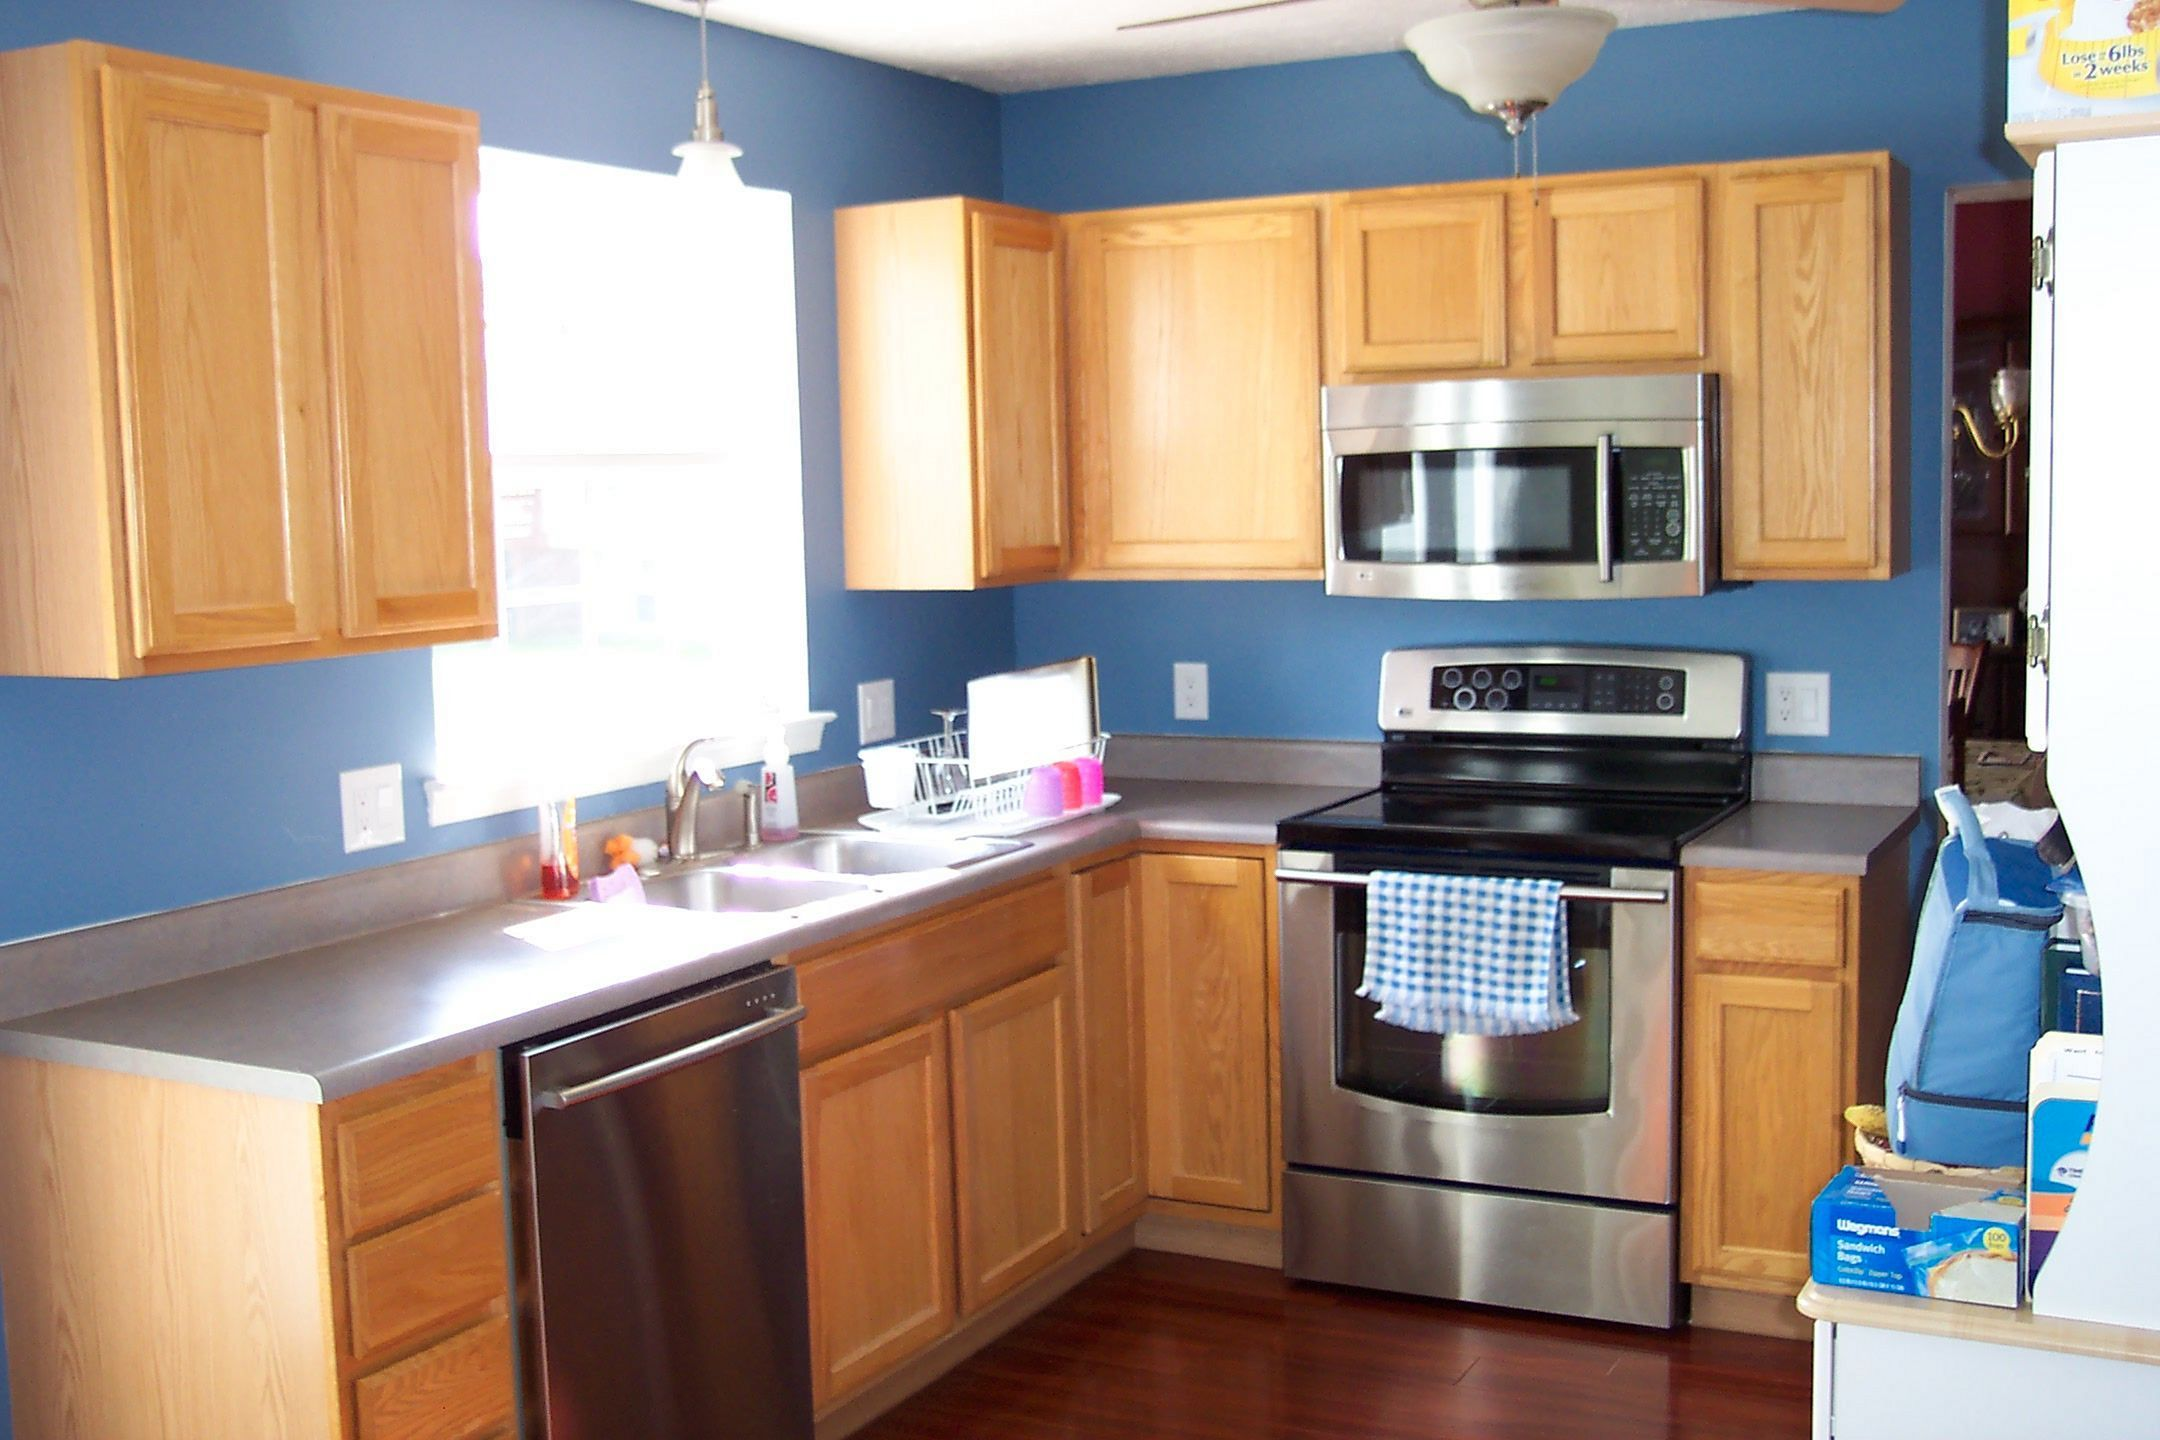 23 Affordable Blue Wall Kitchen Design Ideas For Your Kitchen Inspiration Blue Kitchen Walls Brown Kitchen Cabinets Kitchen Paint